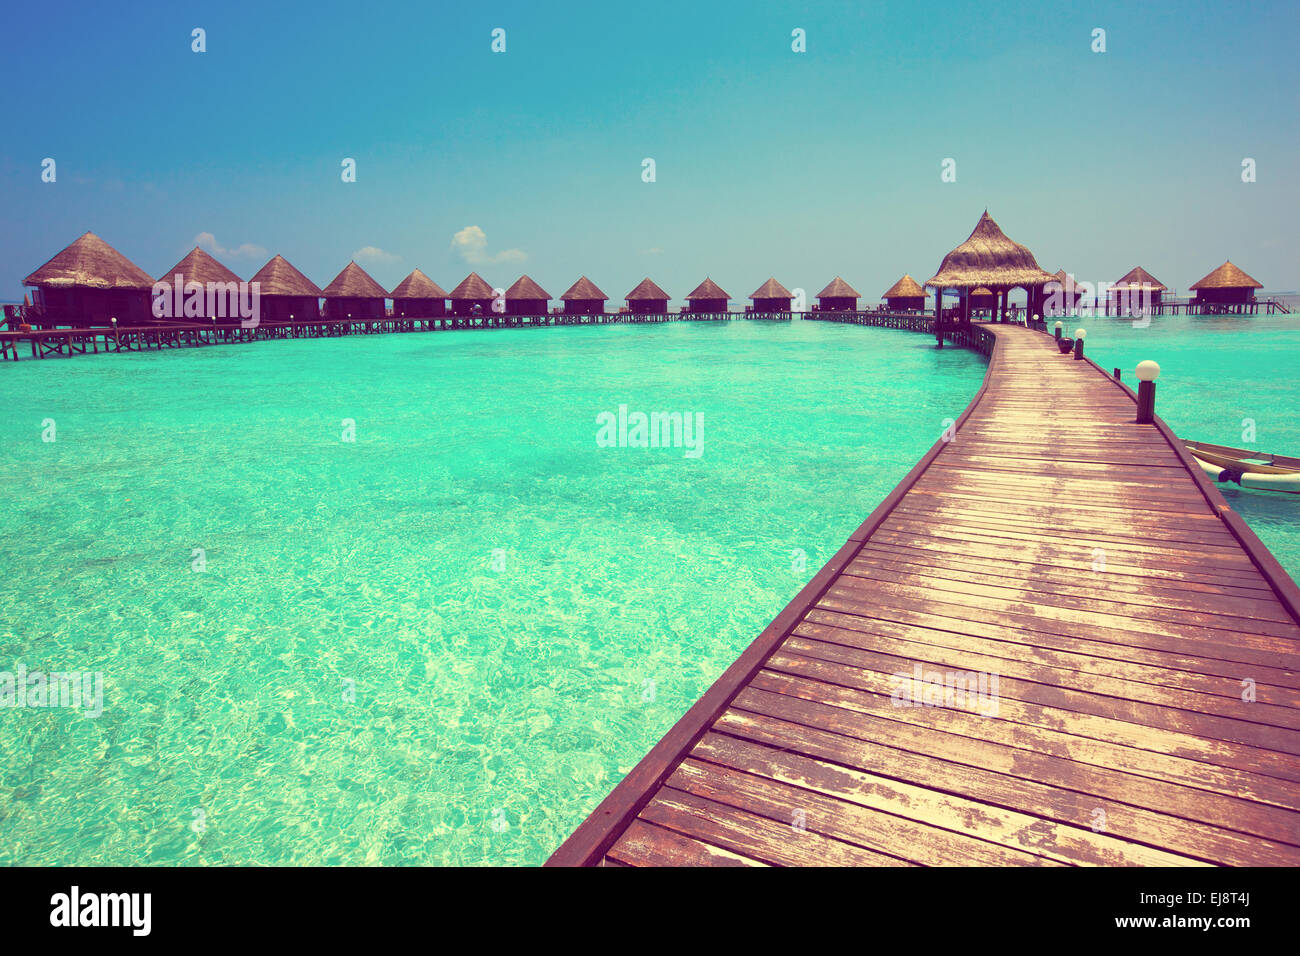 houses on piles on sea. Maldives. - Stock Image